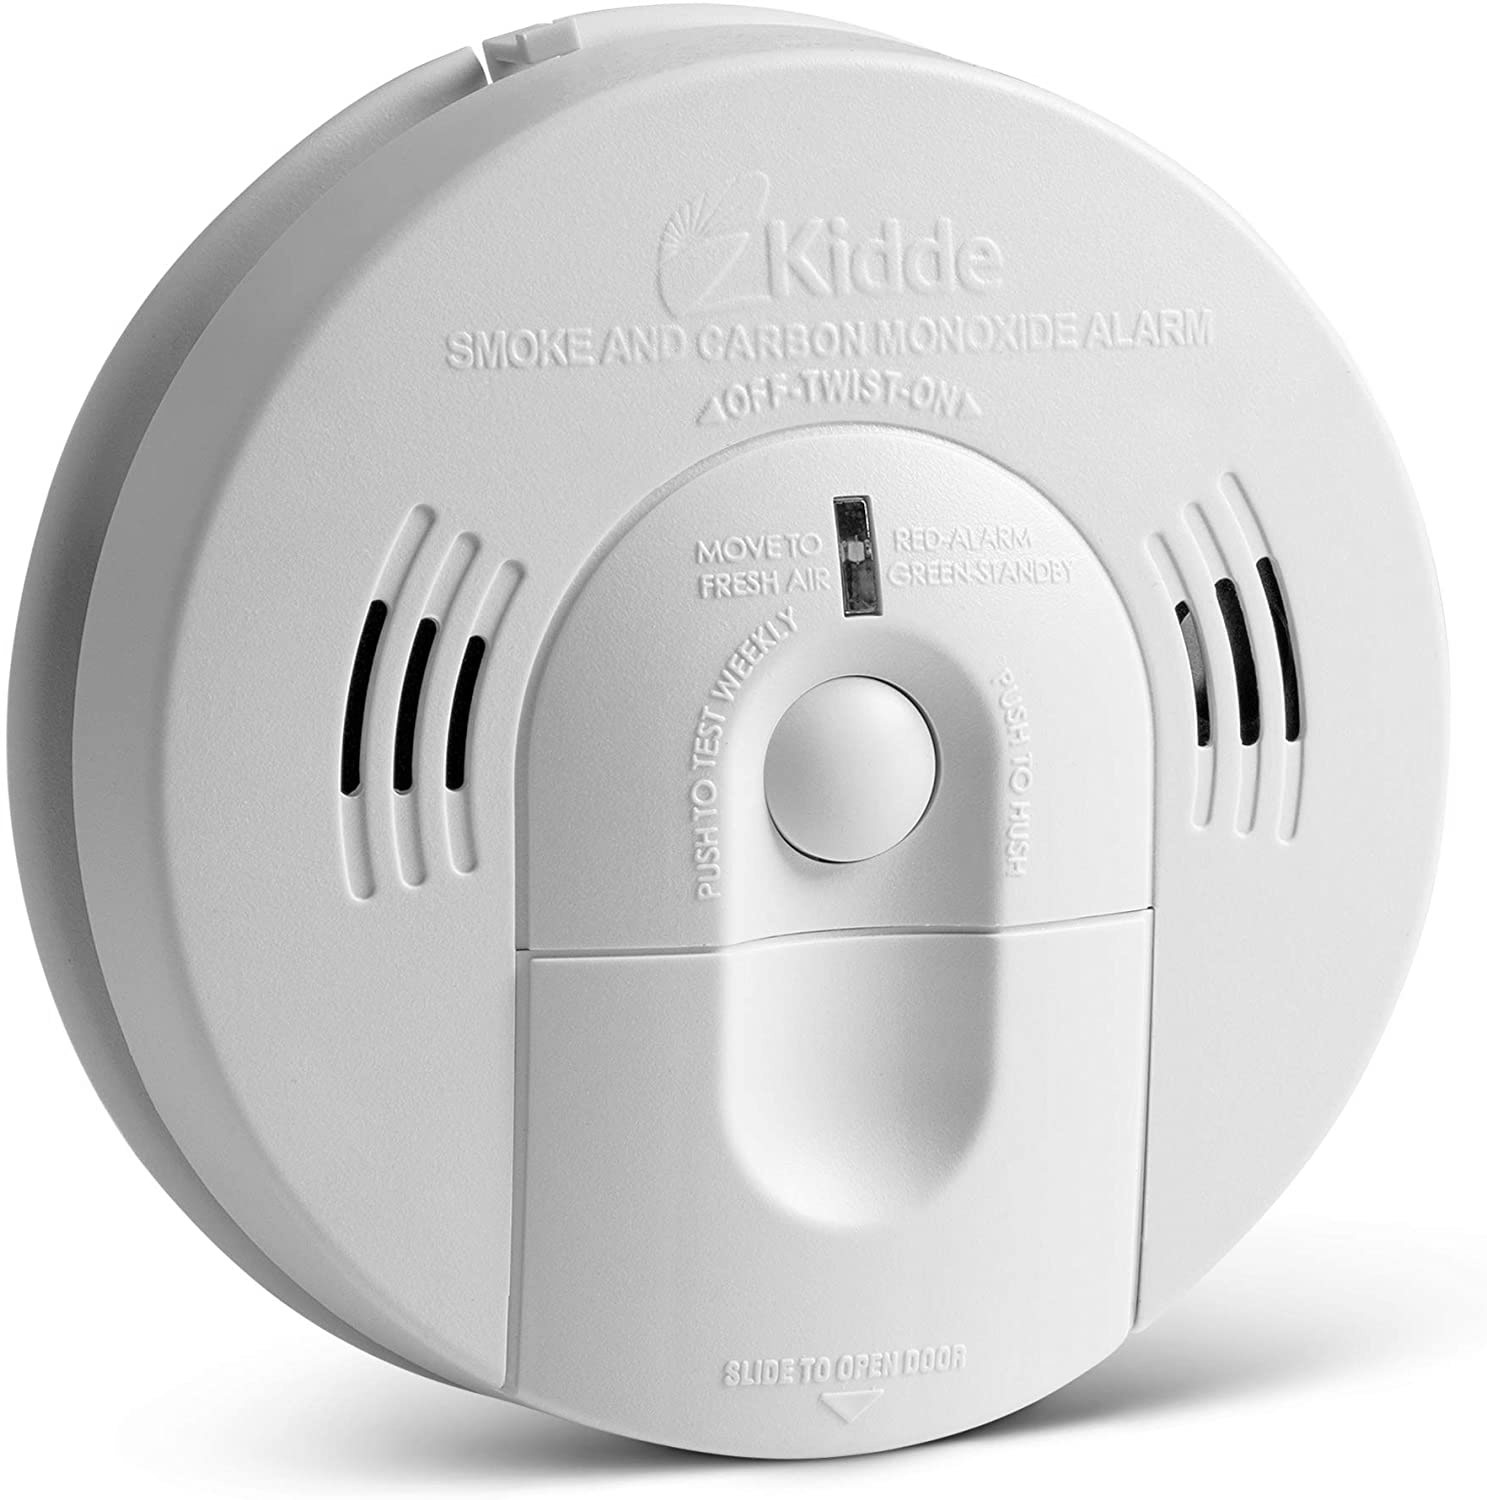 Kidde Talking Smoke, Fire and Carbon Monoxide Alarm Price: $59.95